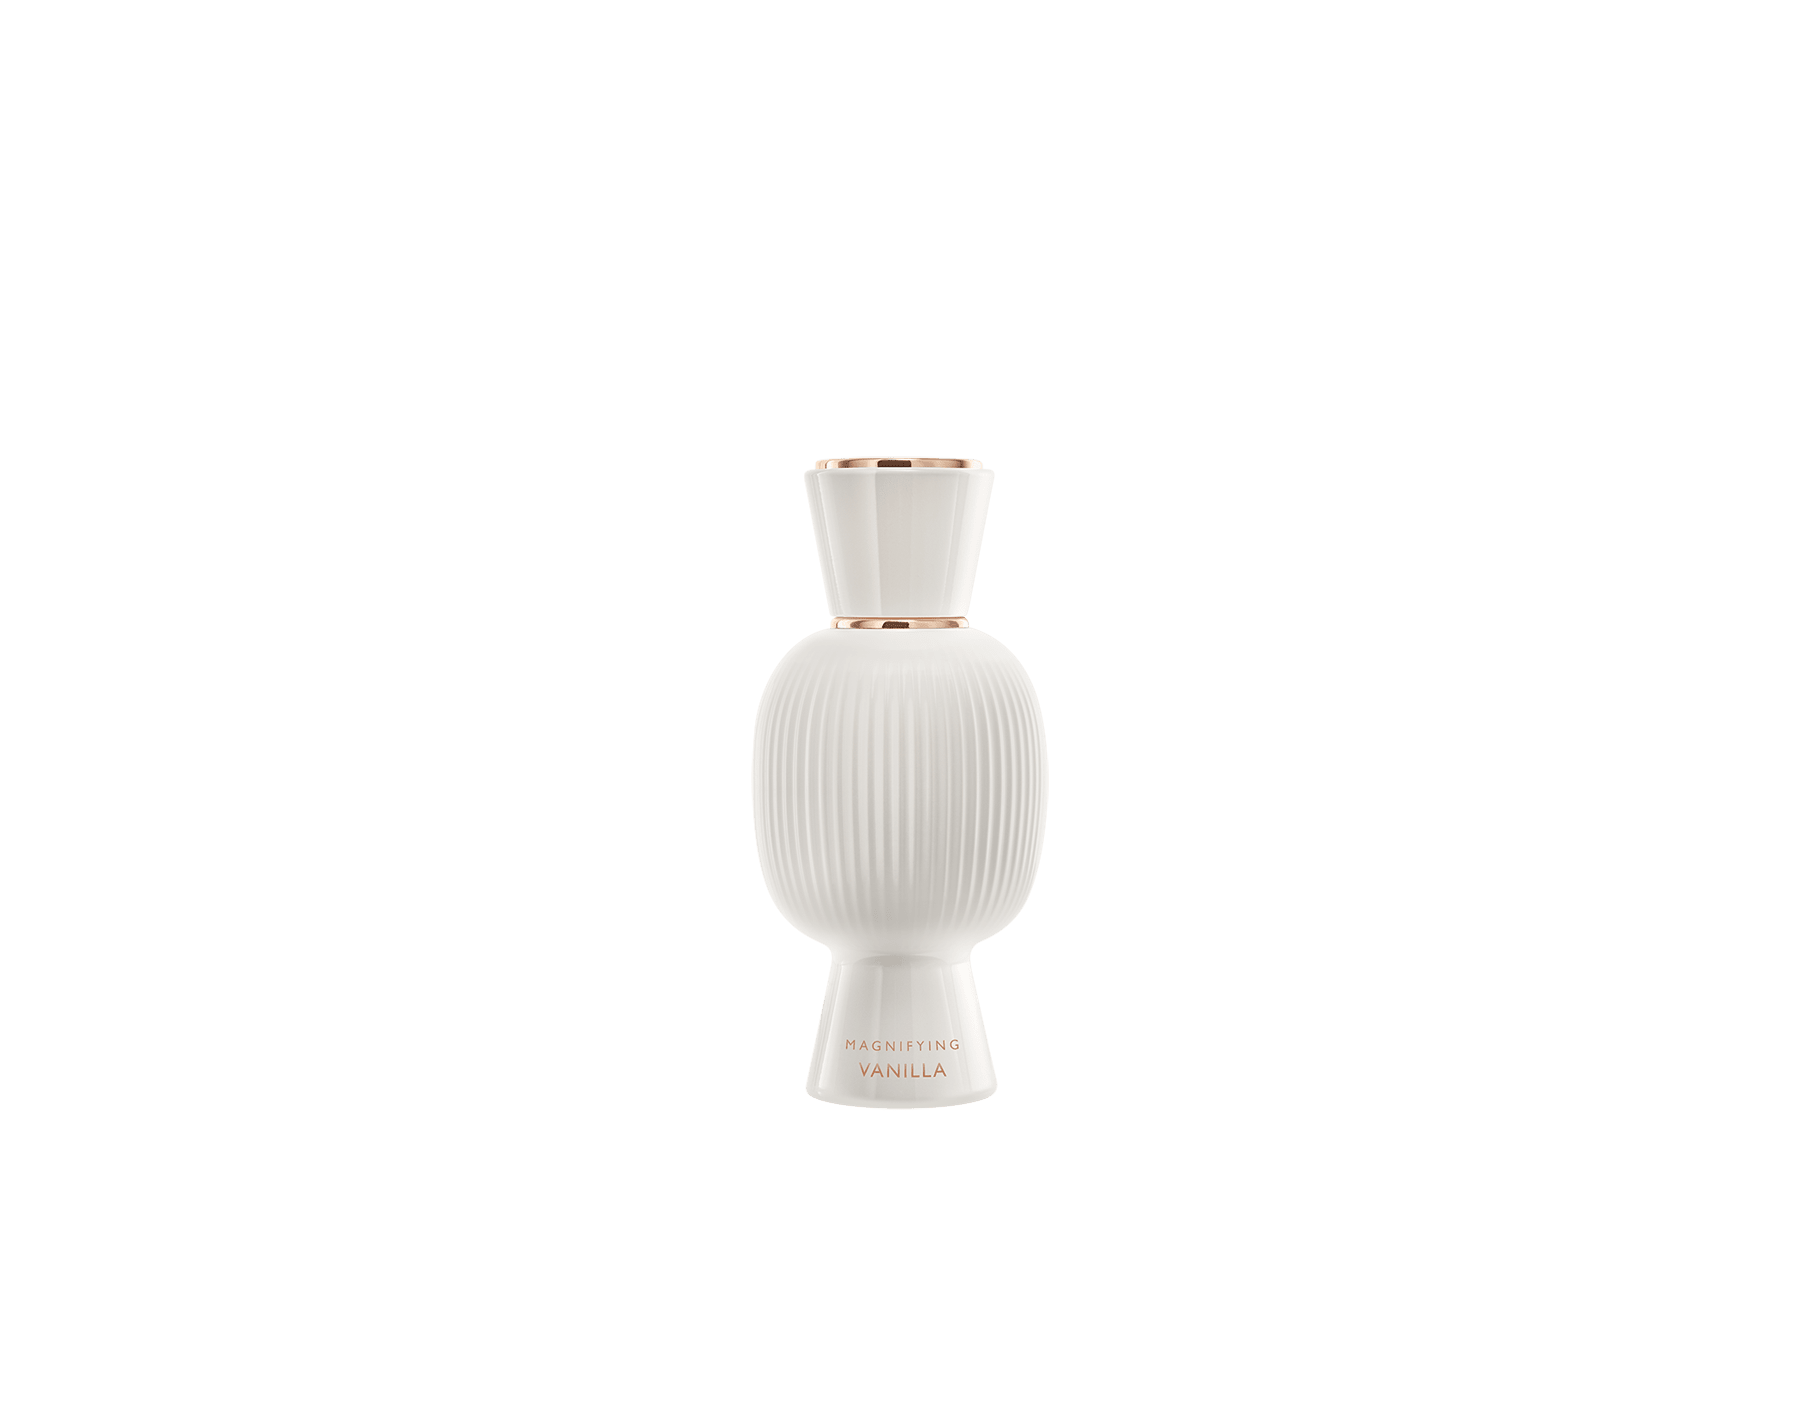 An exclusive perfume set, as bold and unique as you. The powdery floral Dolce Estasi Allegra Eau de Parfum blends with the addictive aroma of the Magnifying Vanilla Essence, creating an irresistible personalised women's perfume. Perfume-Set-Dolce-Estasi-Eau-de-Parfum-and-Vanilla-Magnifying image 3